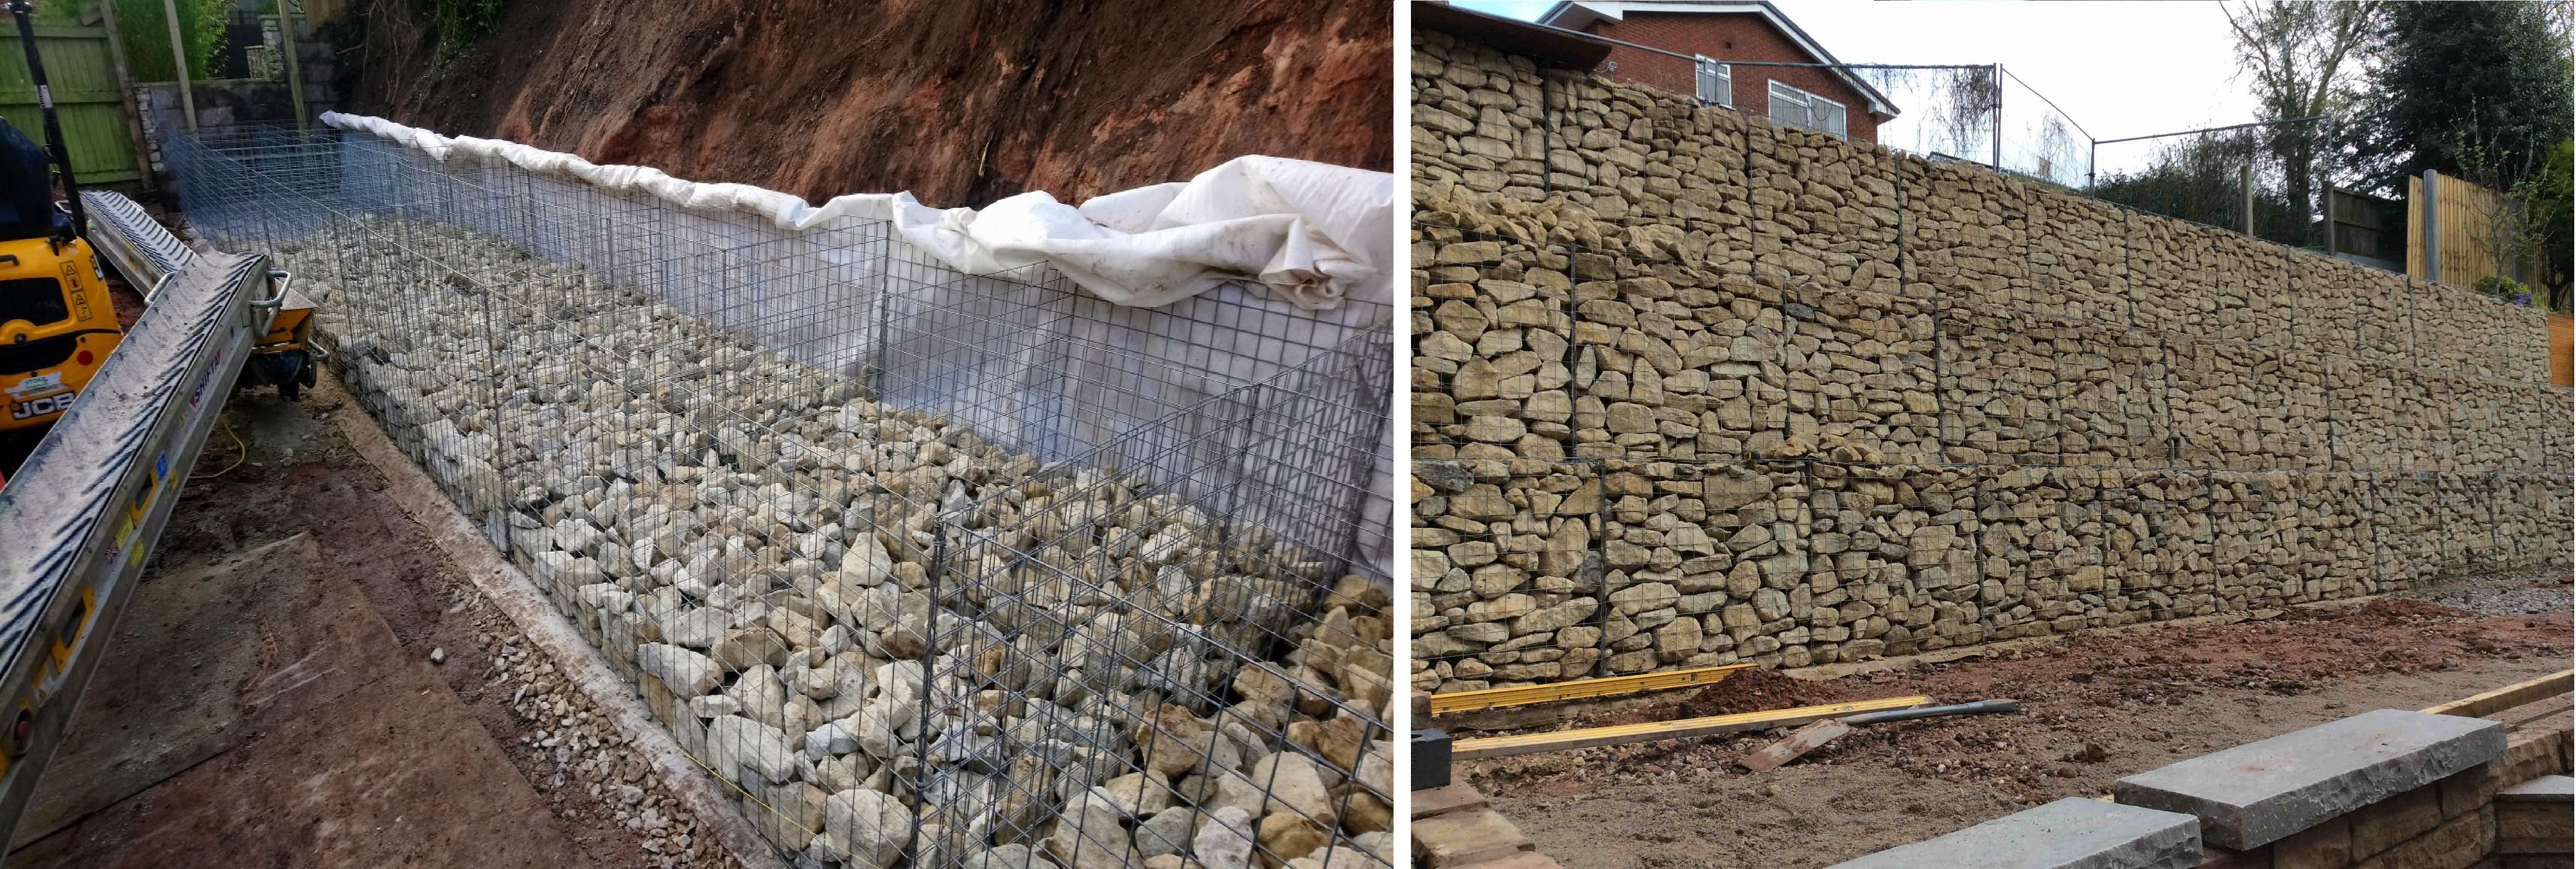 Building the Gabion Retaining Wall